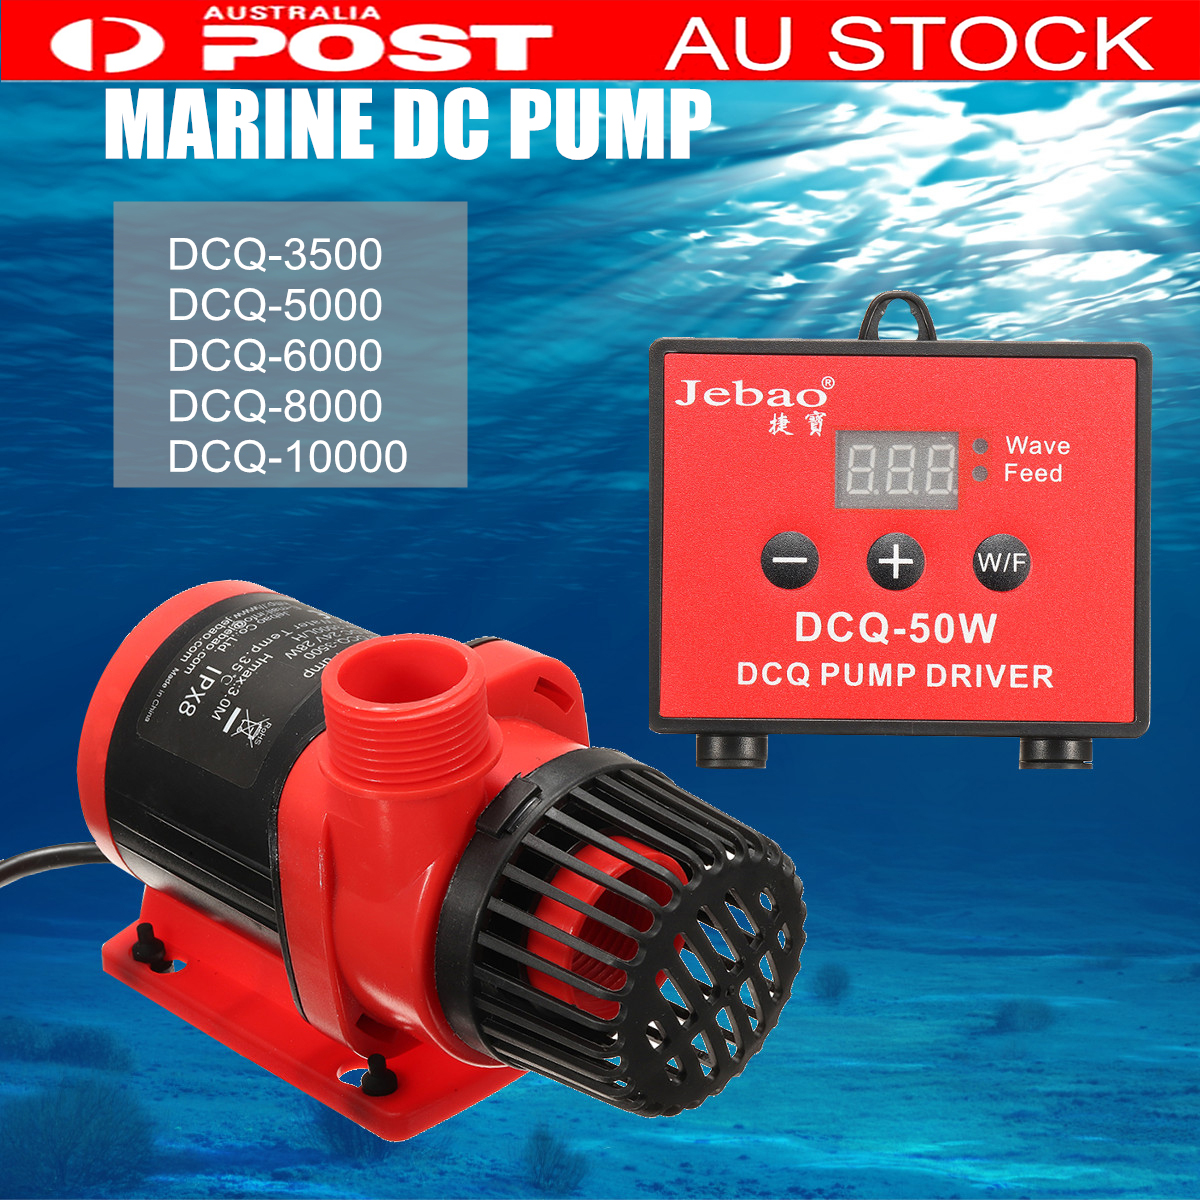 Jebao Jecod DCQ Submersible Water Pump Fish Tank Circulating Aquarium 28/40/45/65/80W 3M 5.5M 3500L/H 10000L/H Filter